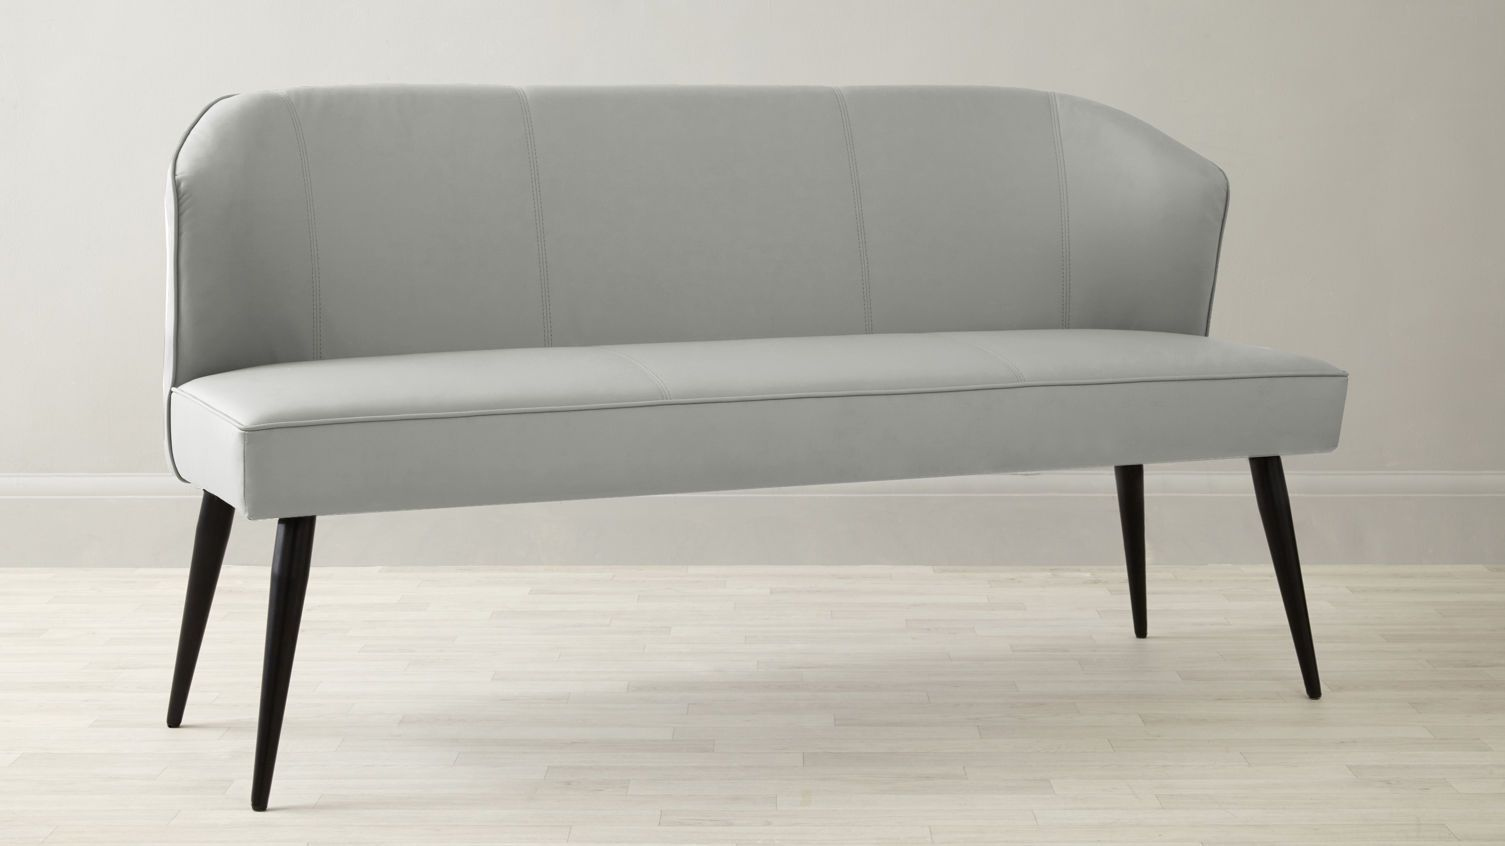 Mellow 3 Seater Bench With Backrest Danetti The Mellow Bench